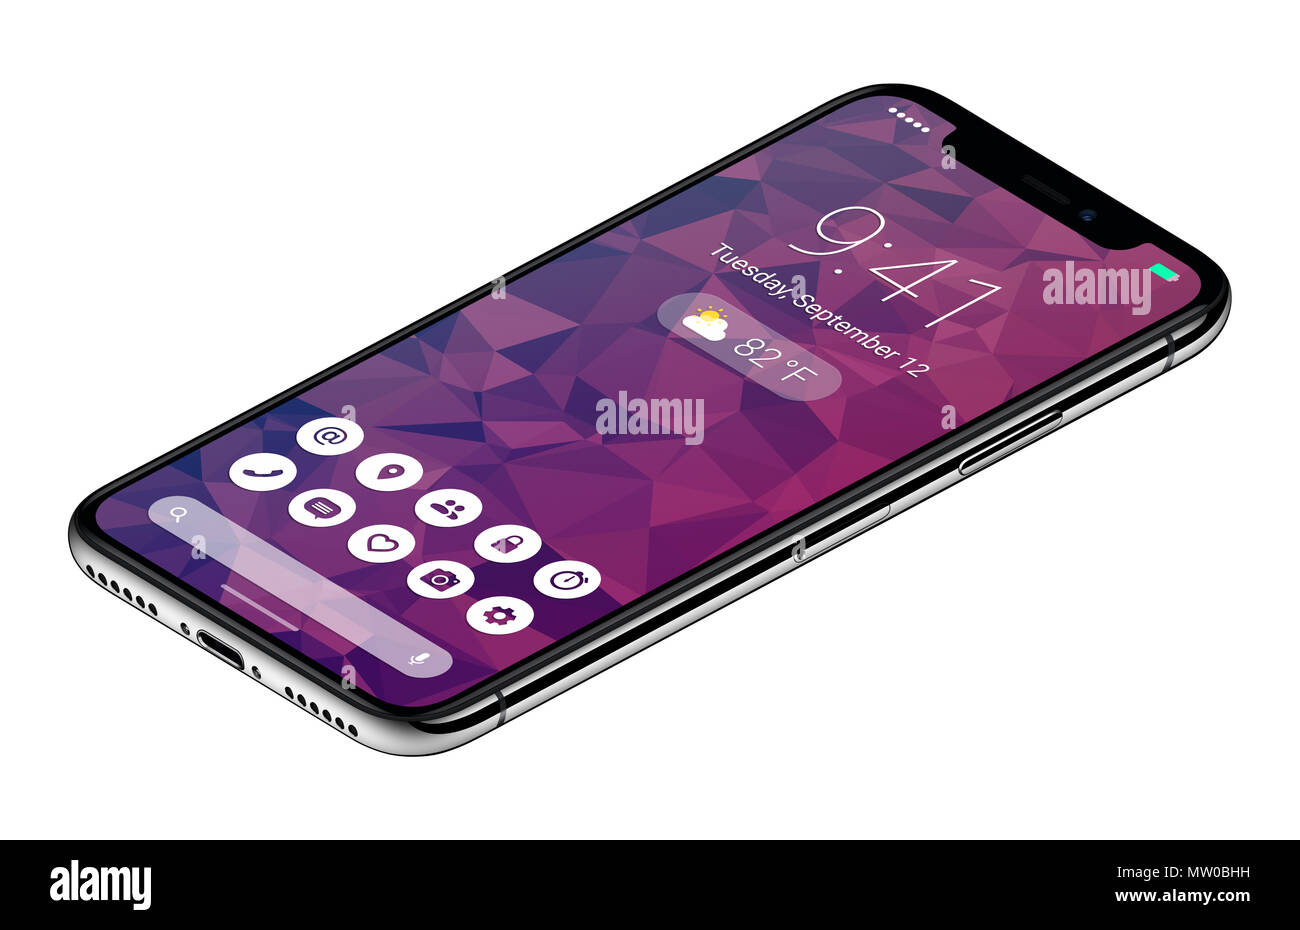 Isometric view frameless smartphone concept with material design flat UI interface similar to Android P. - Stock Image